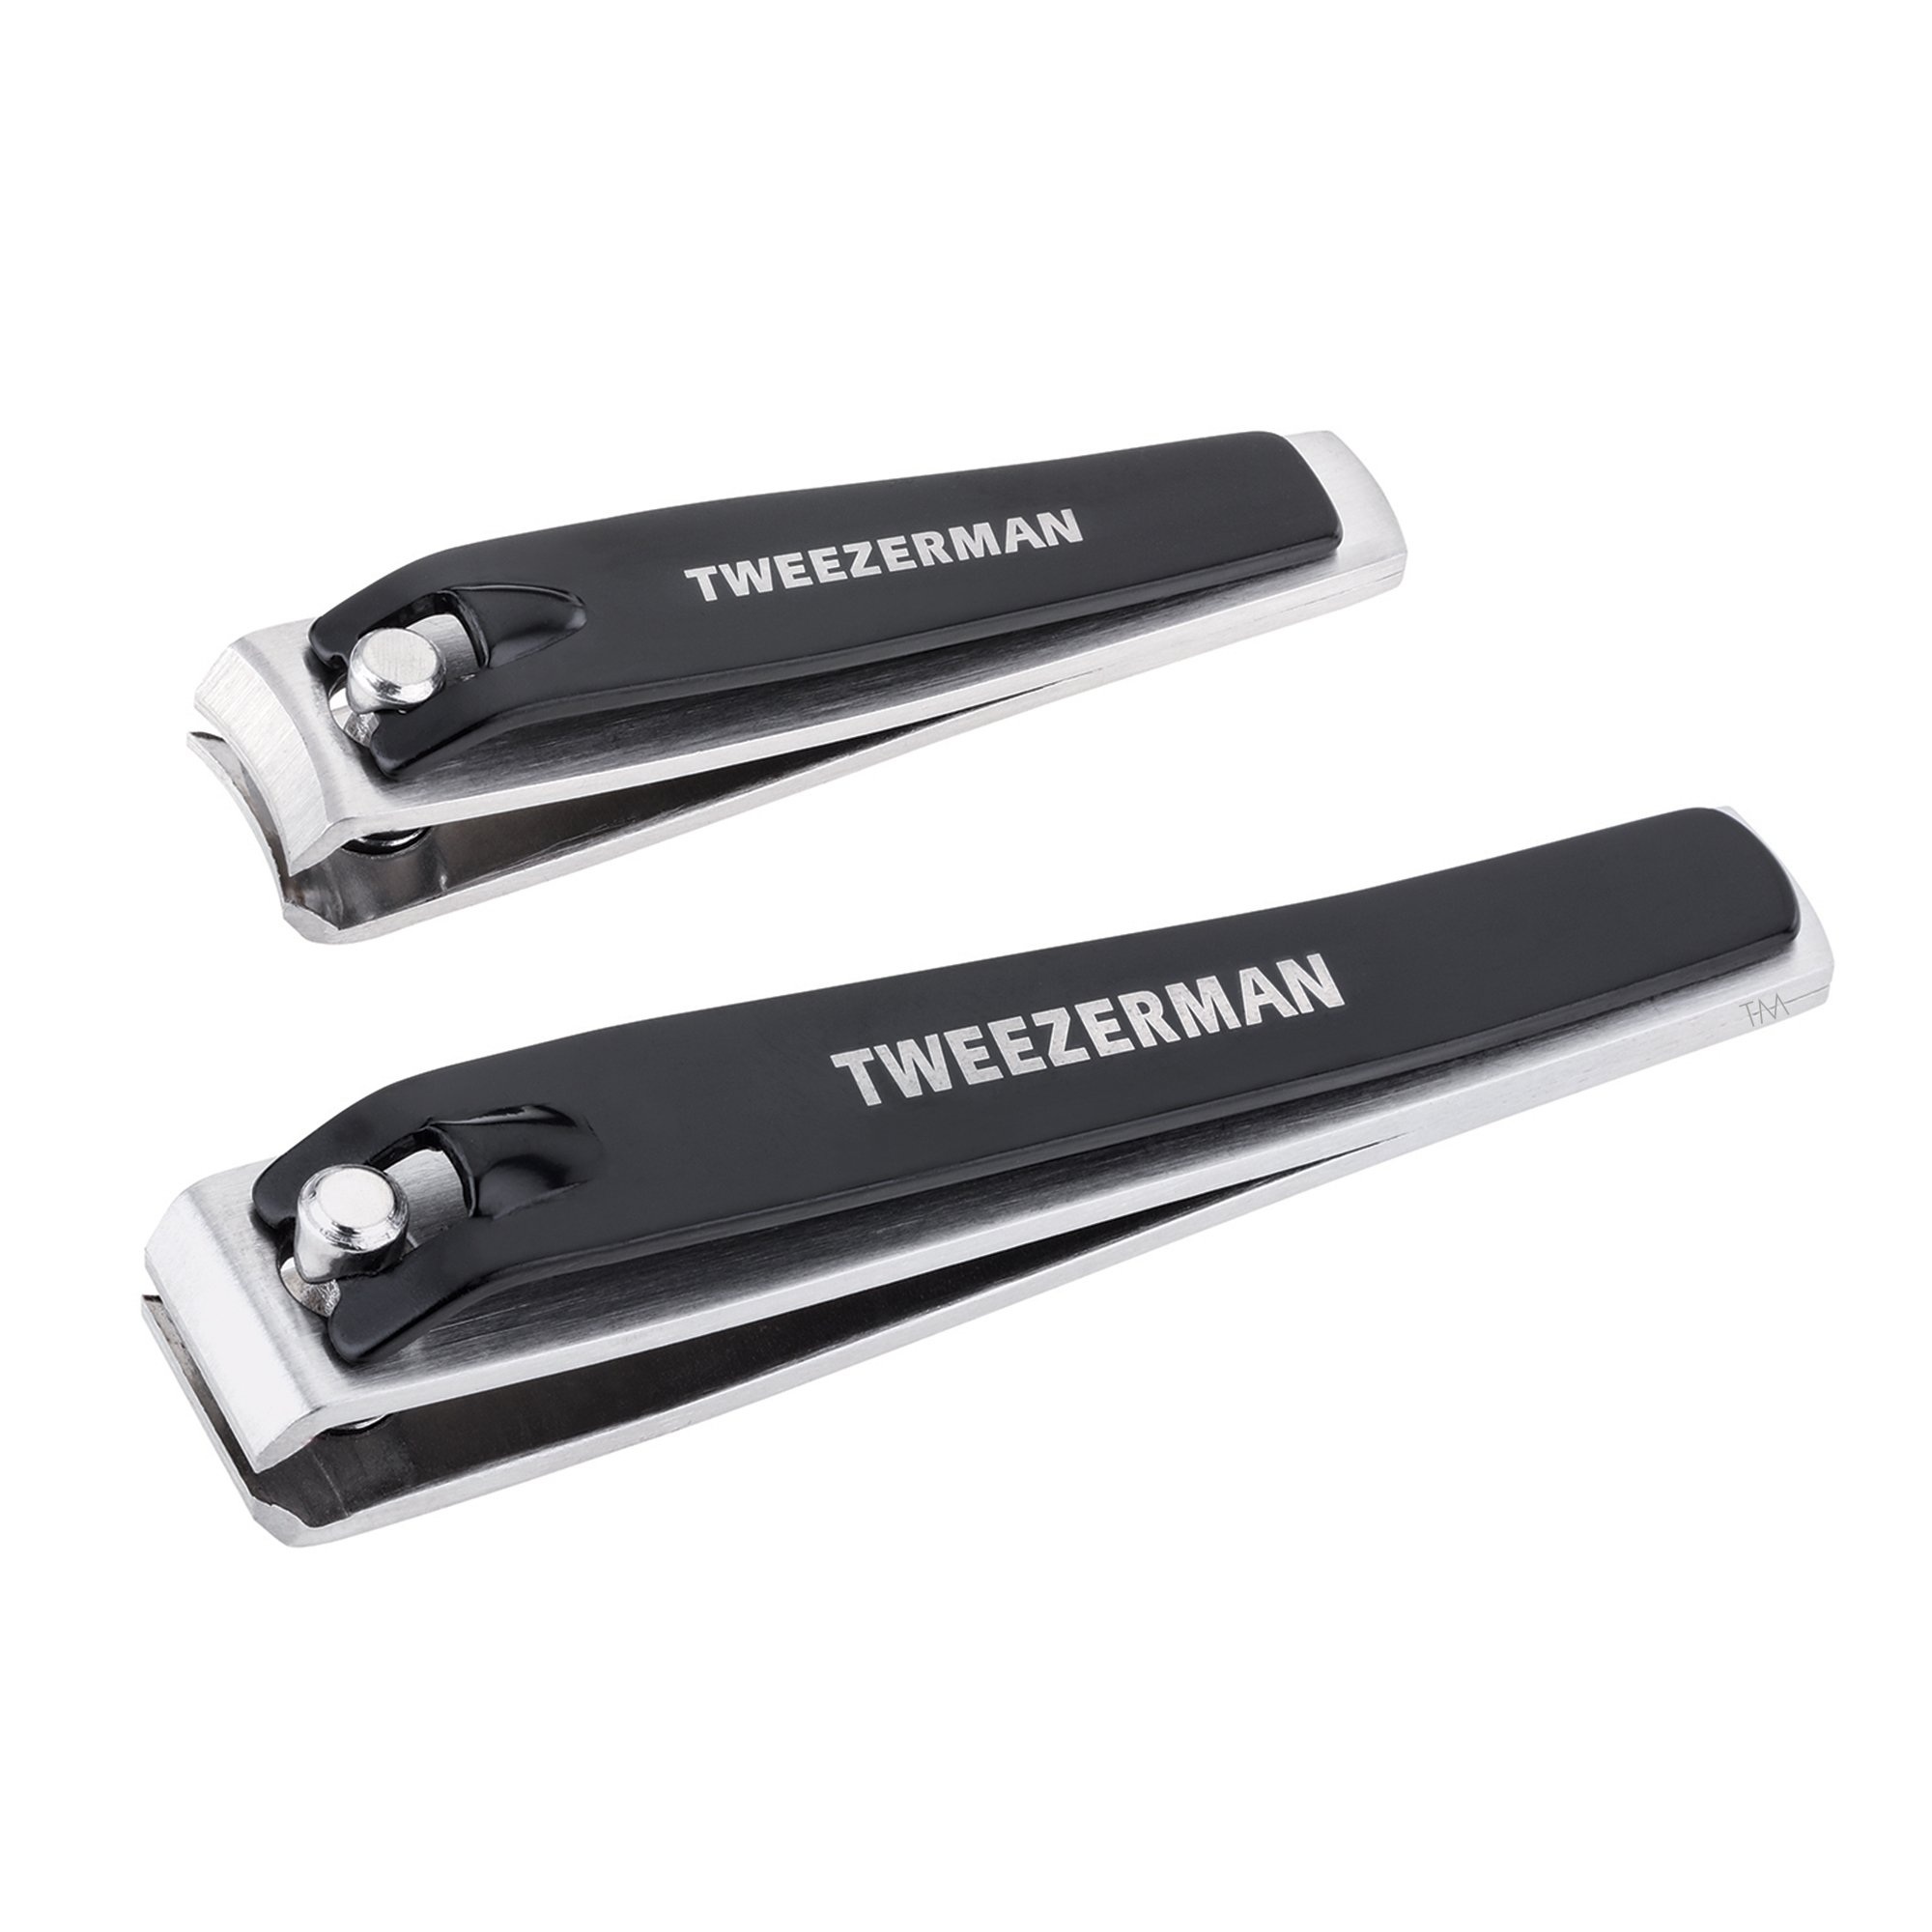 Tweezerman Combo Clipper Set with Fingernail Clippers and Toenail Clippers